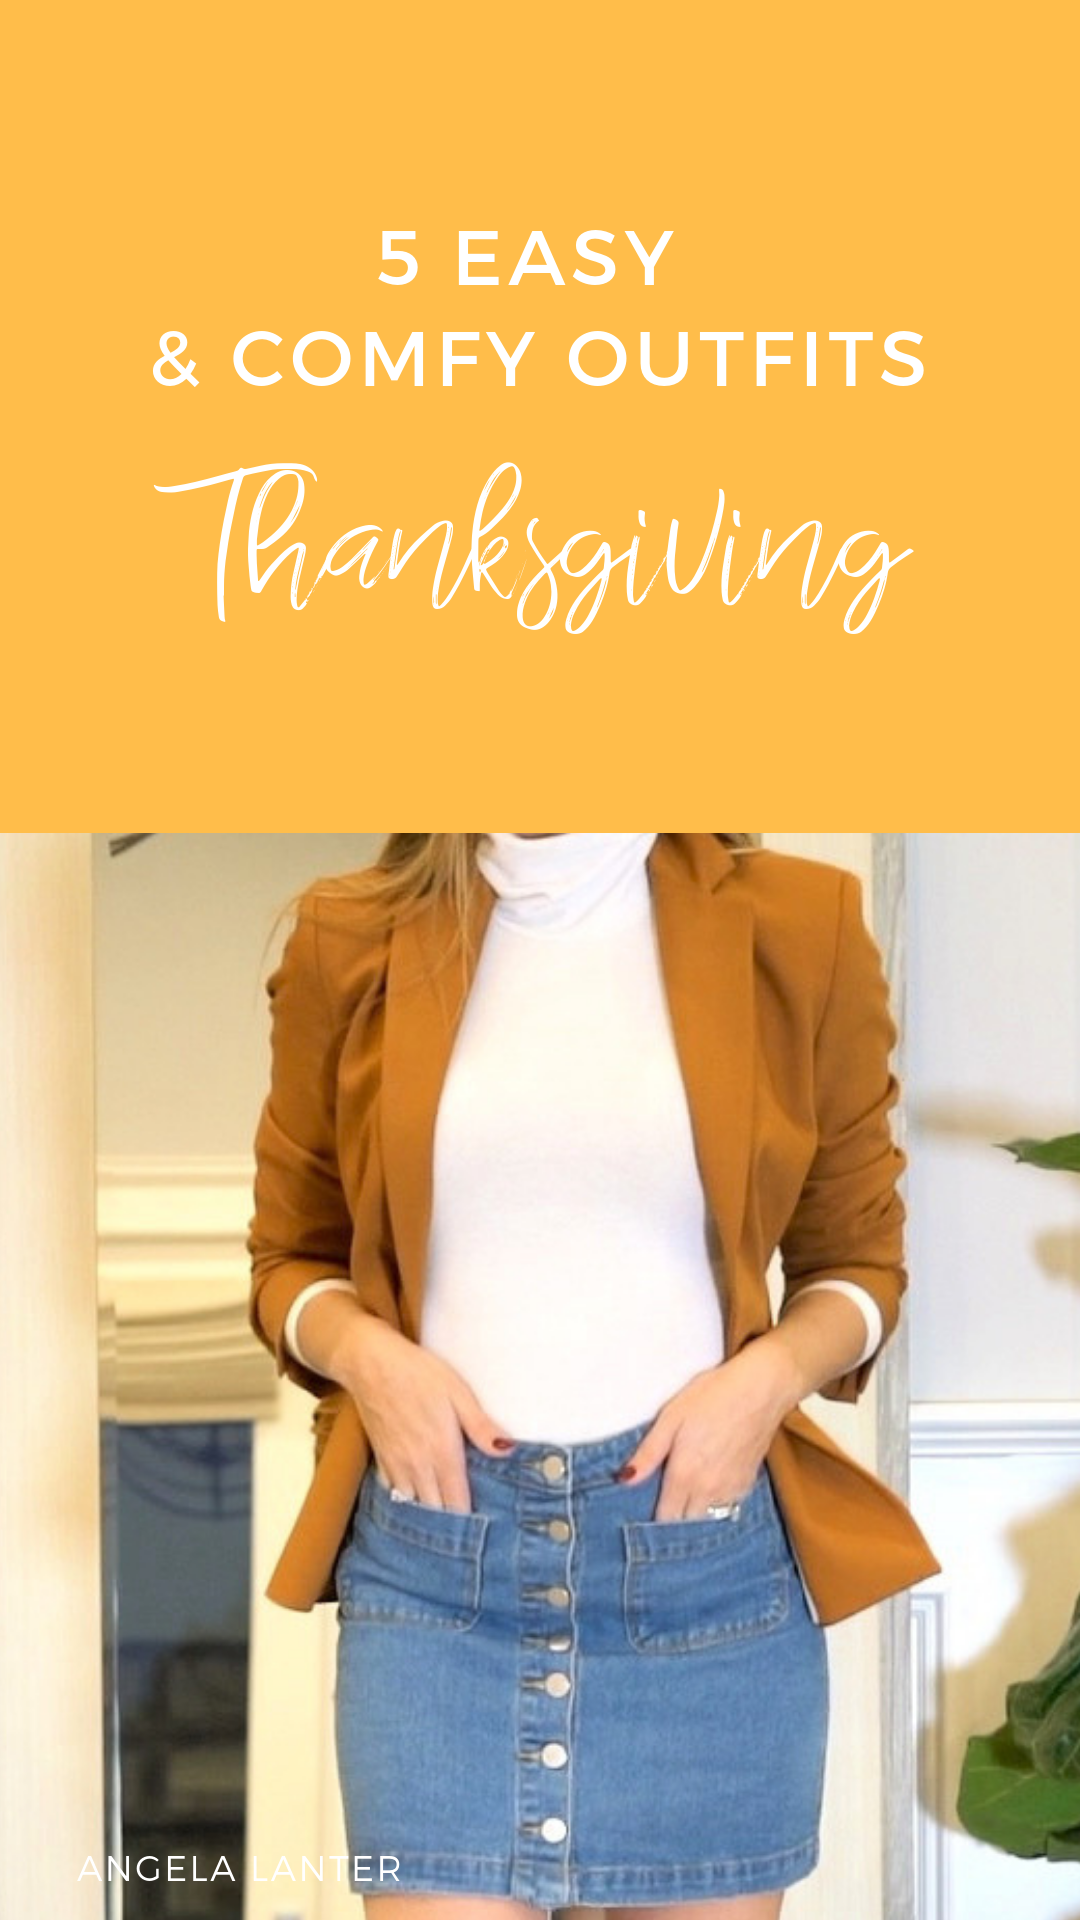 add6eb6a8034b 5 Easy and Comfy Outfit Ideas to wear for Thanksgiving. Angela Lanter Video  tutorial about what to wear on Thanksgiving. Re-create these outfits for  this ...